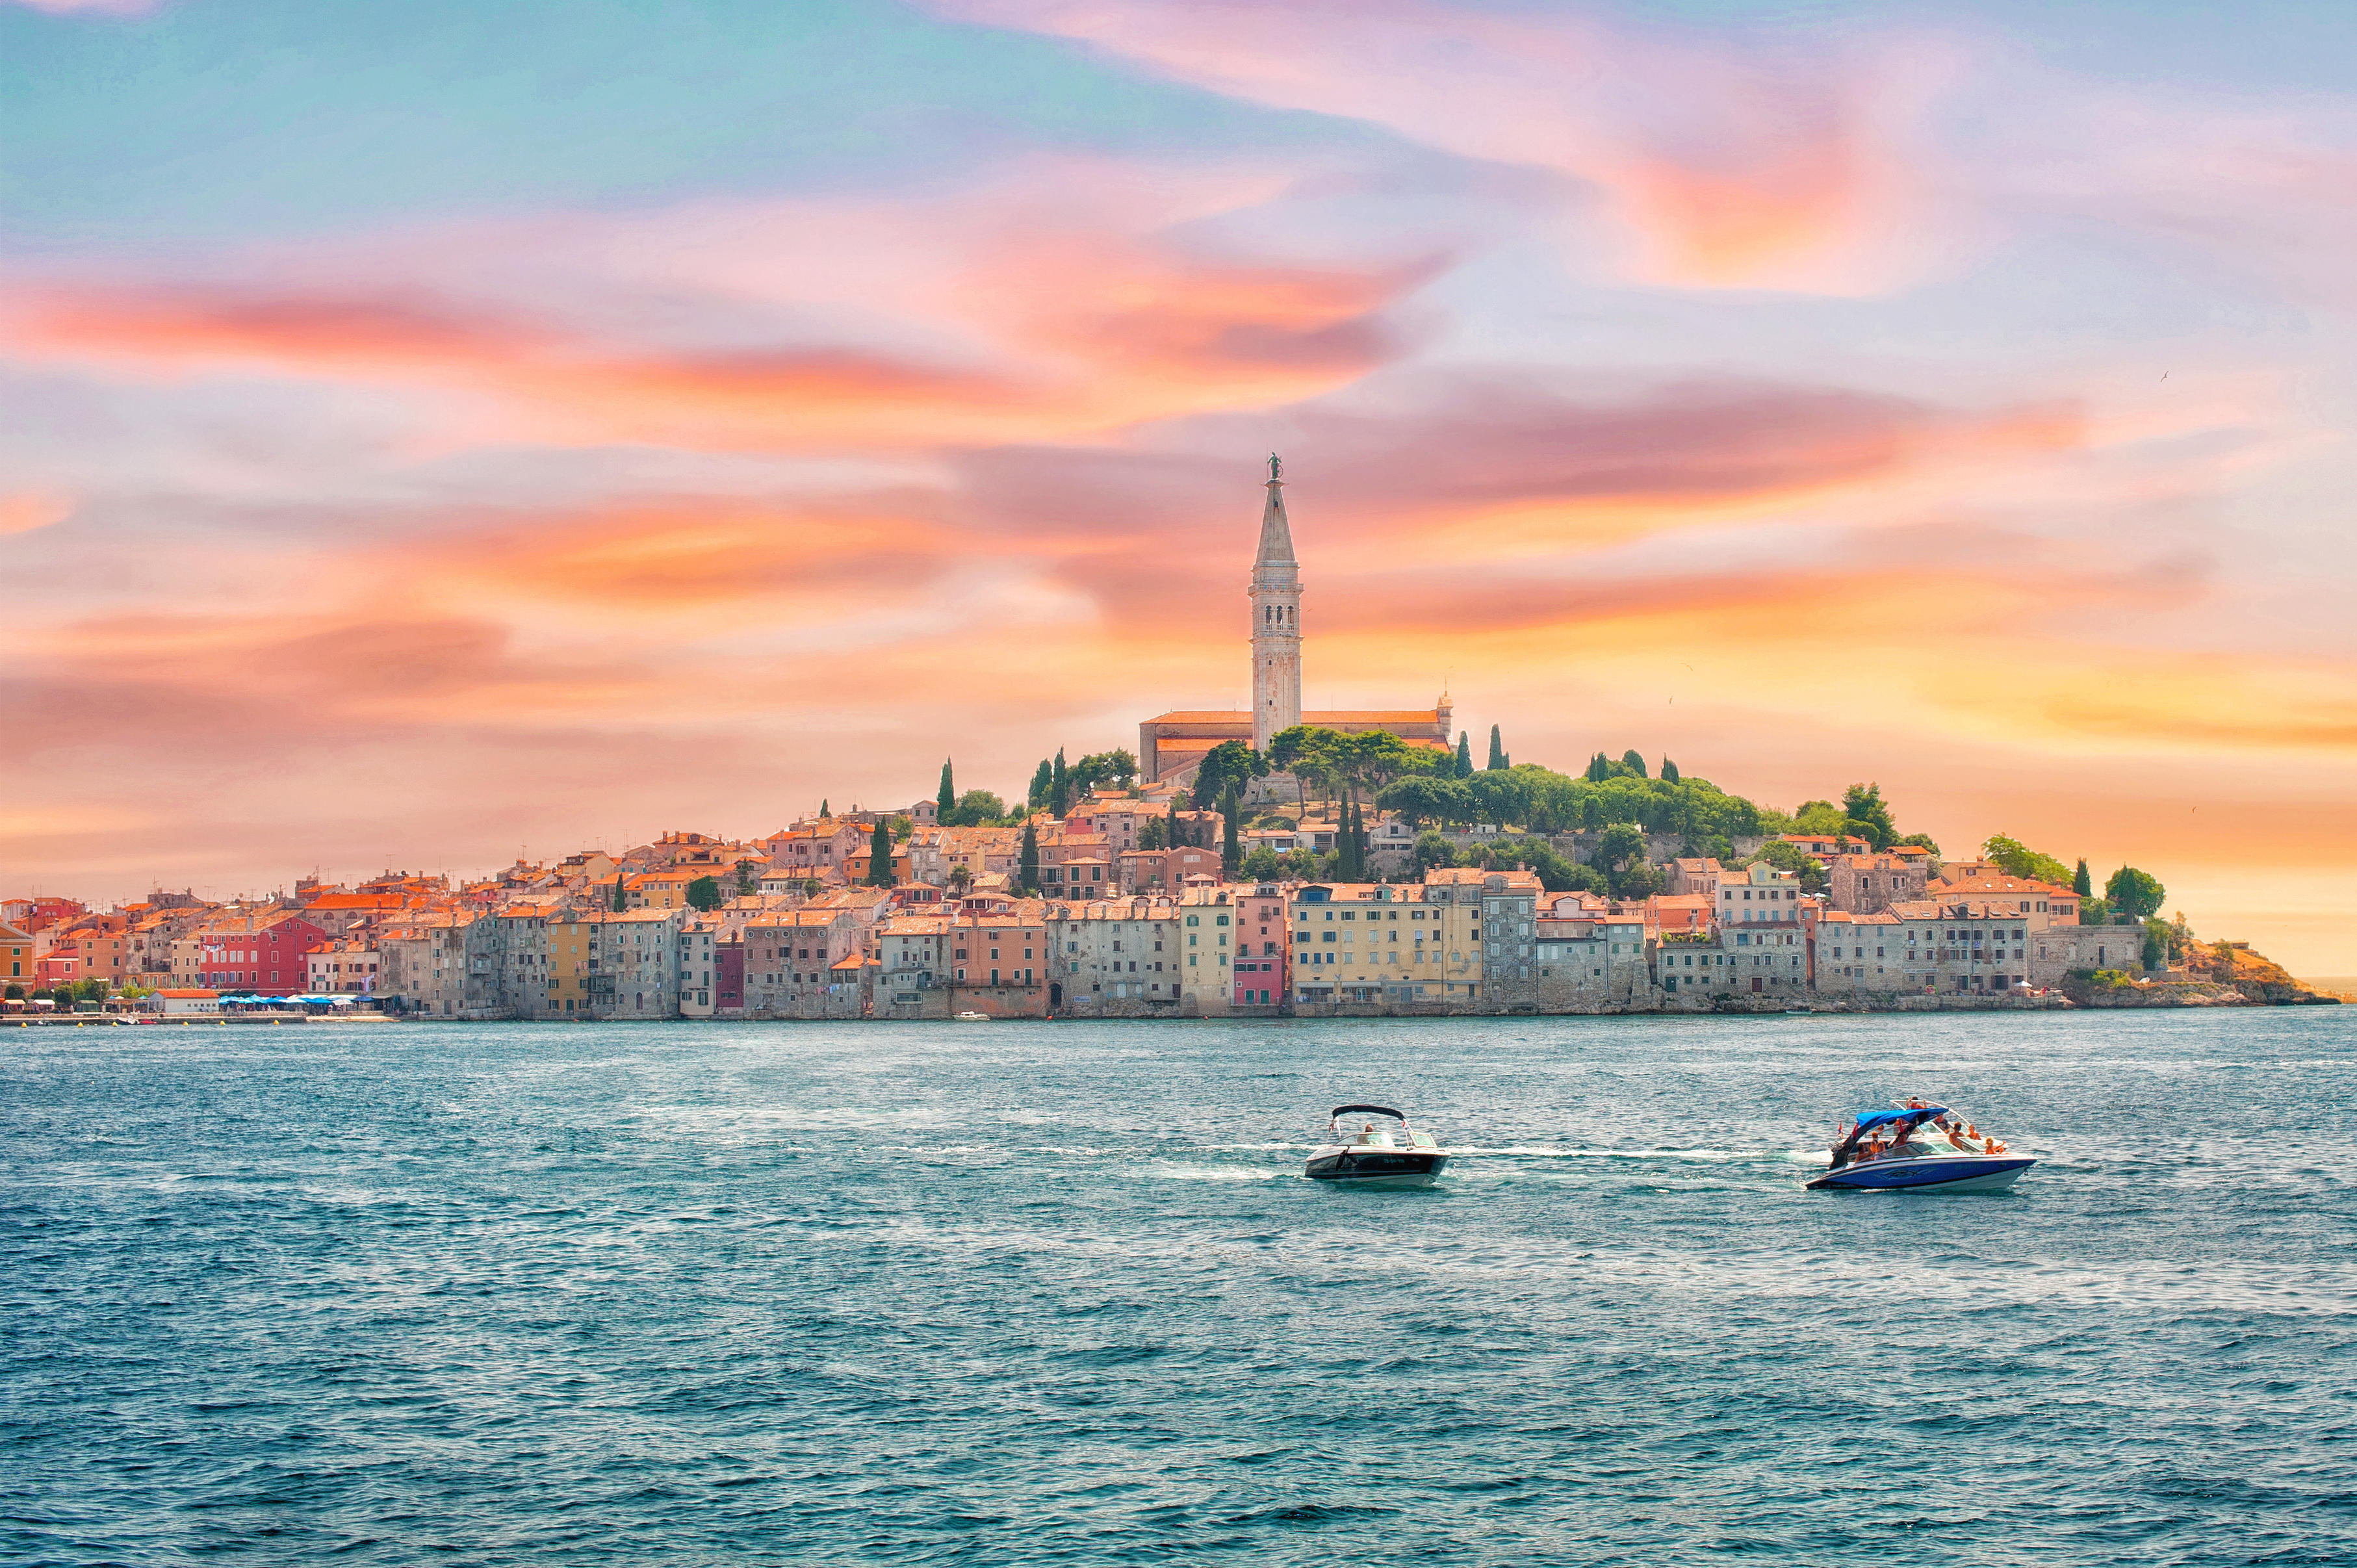 Croatia. View of the historical center of Rovinj